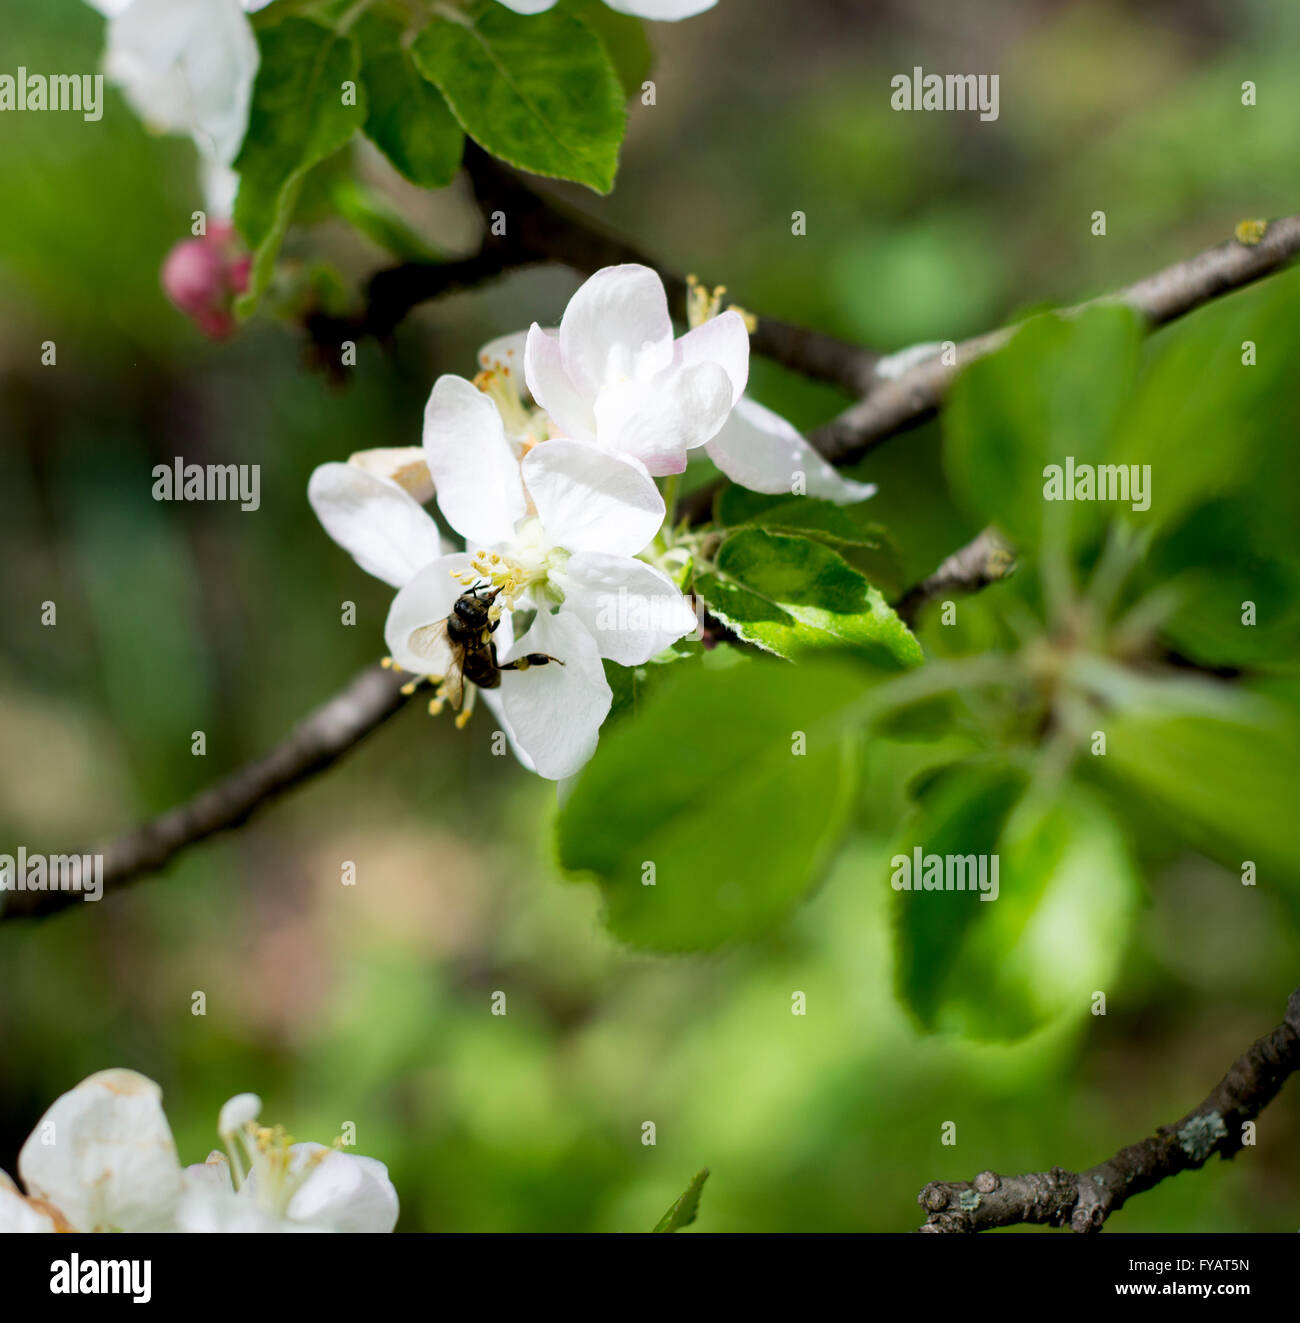 the blossoming apple-tree, bee collects nectar - Stock Image